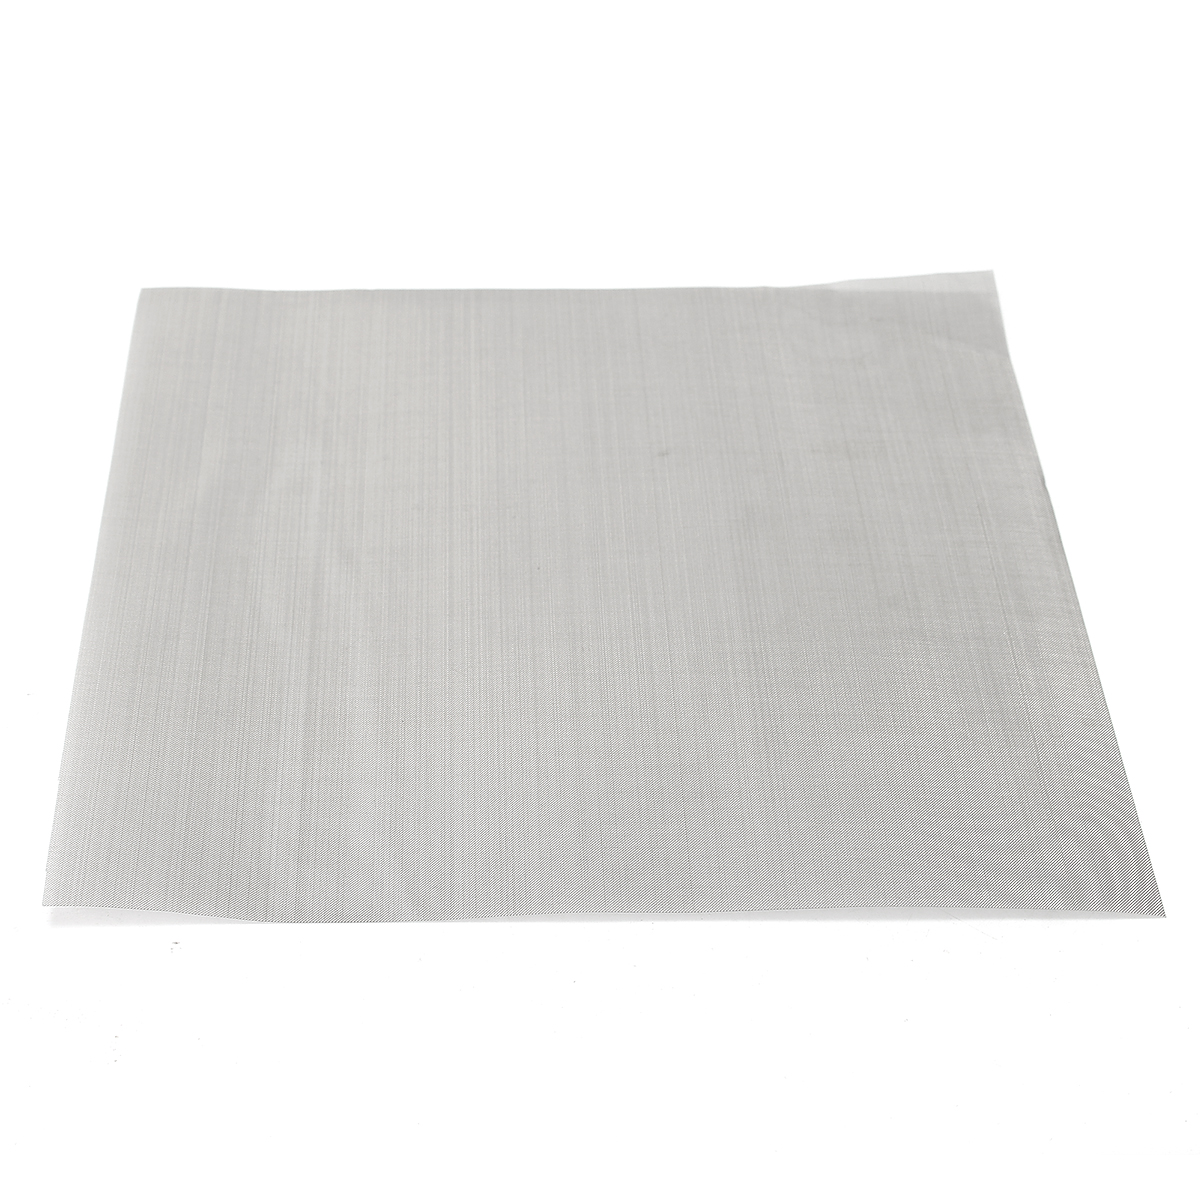 30x30cm Woven Wire Cloth Screen  Stainless Steel 304 60 Mesh